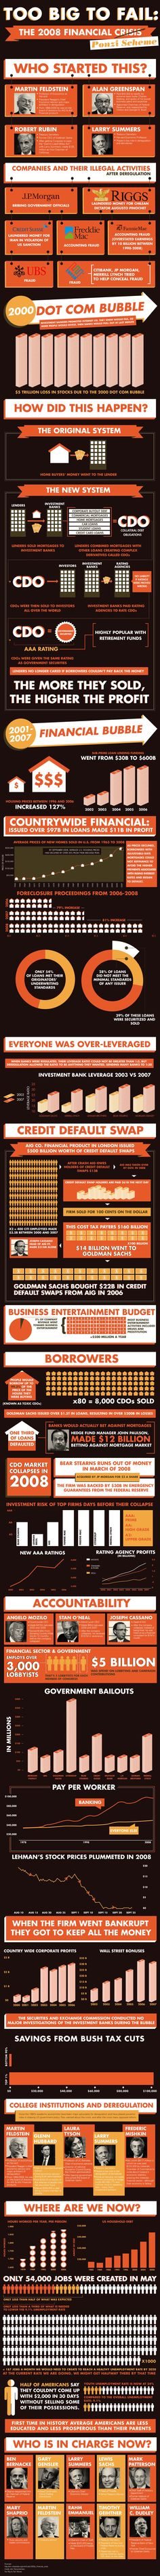 Who started the Financial Crisis?